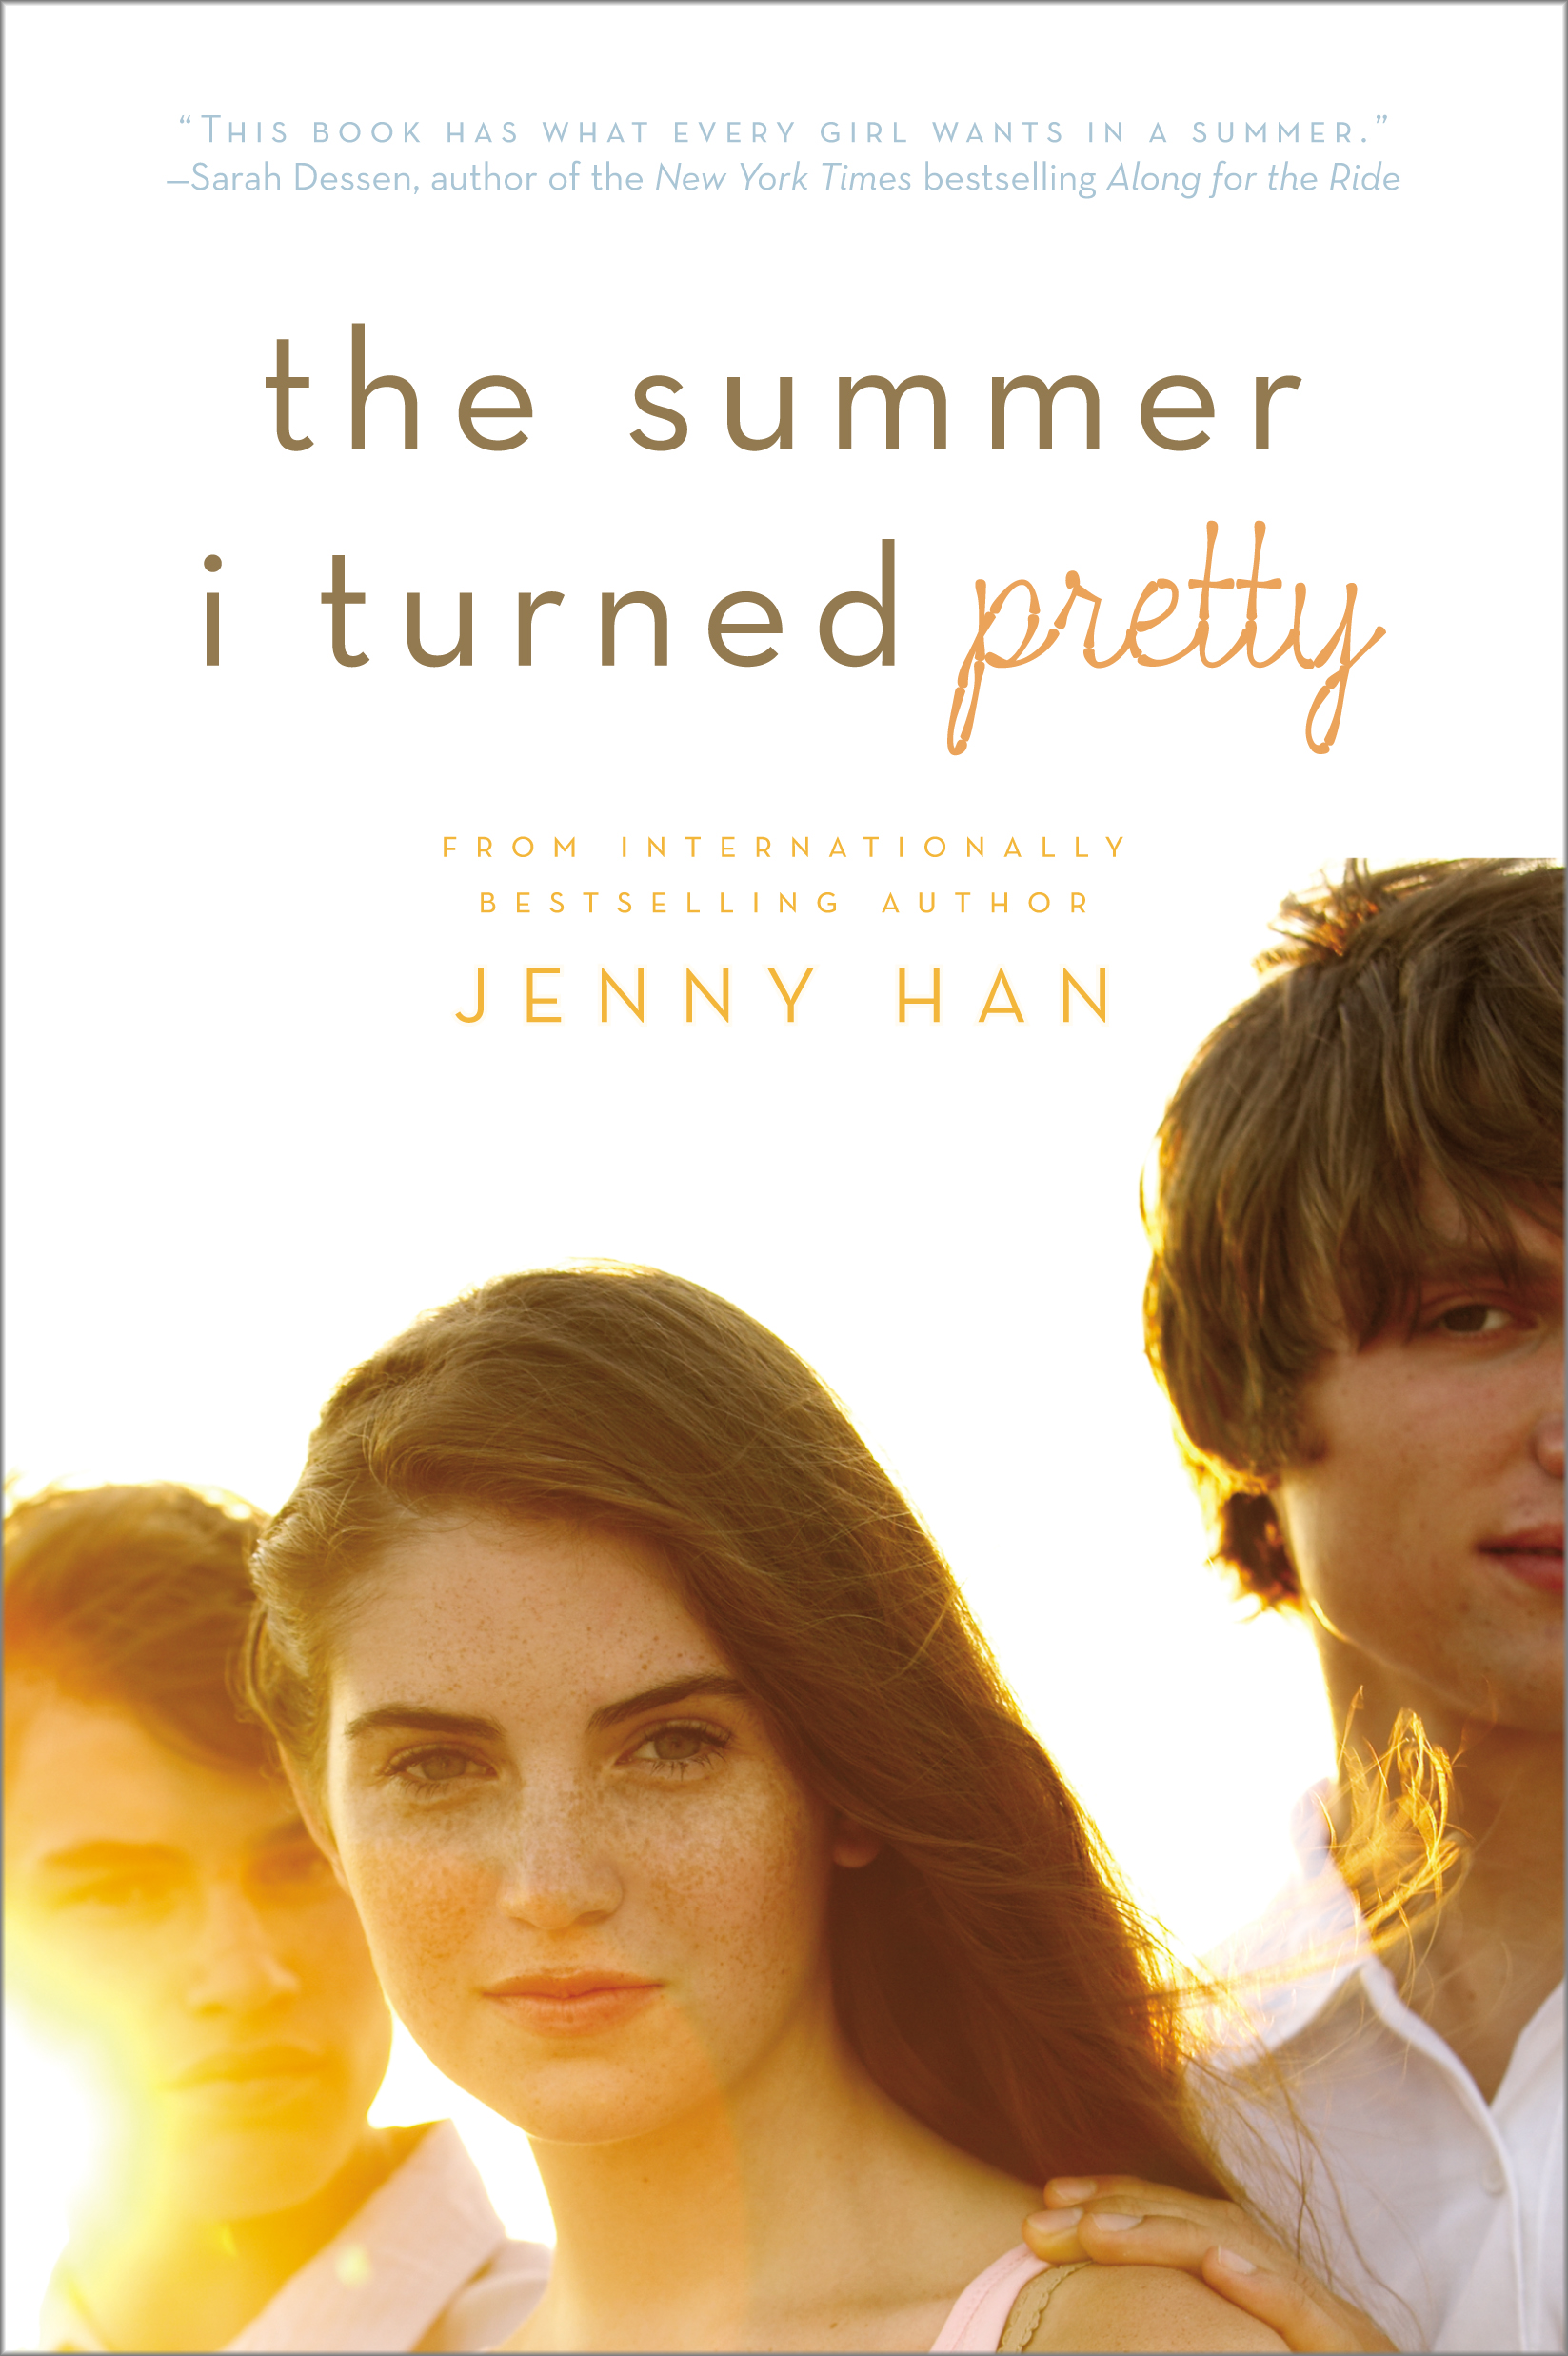 Pretty Ya Book Covers : The summer i turned pretty book by jenny han official